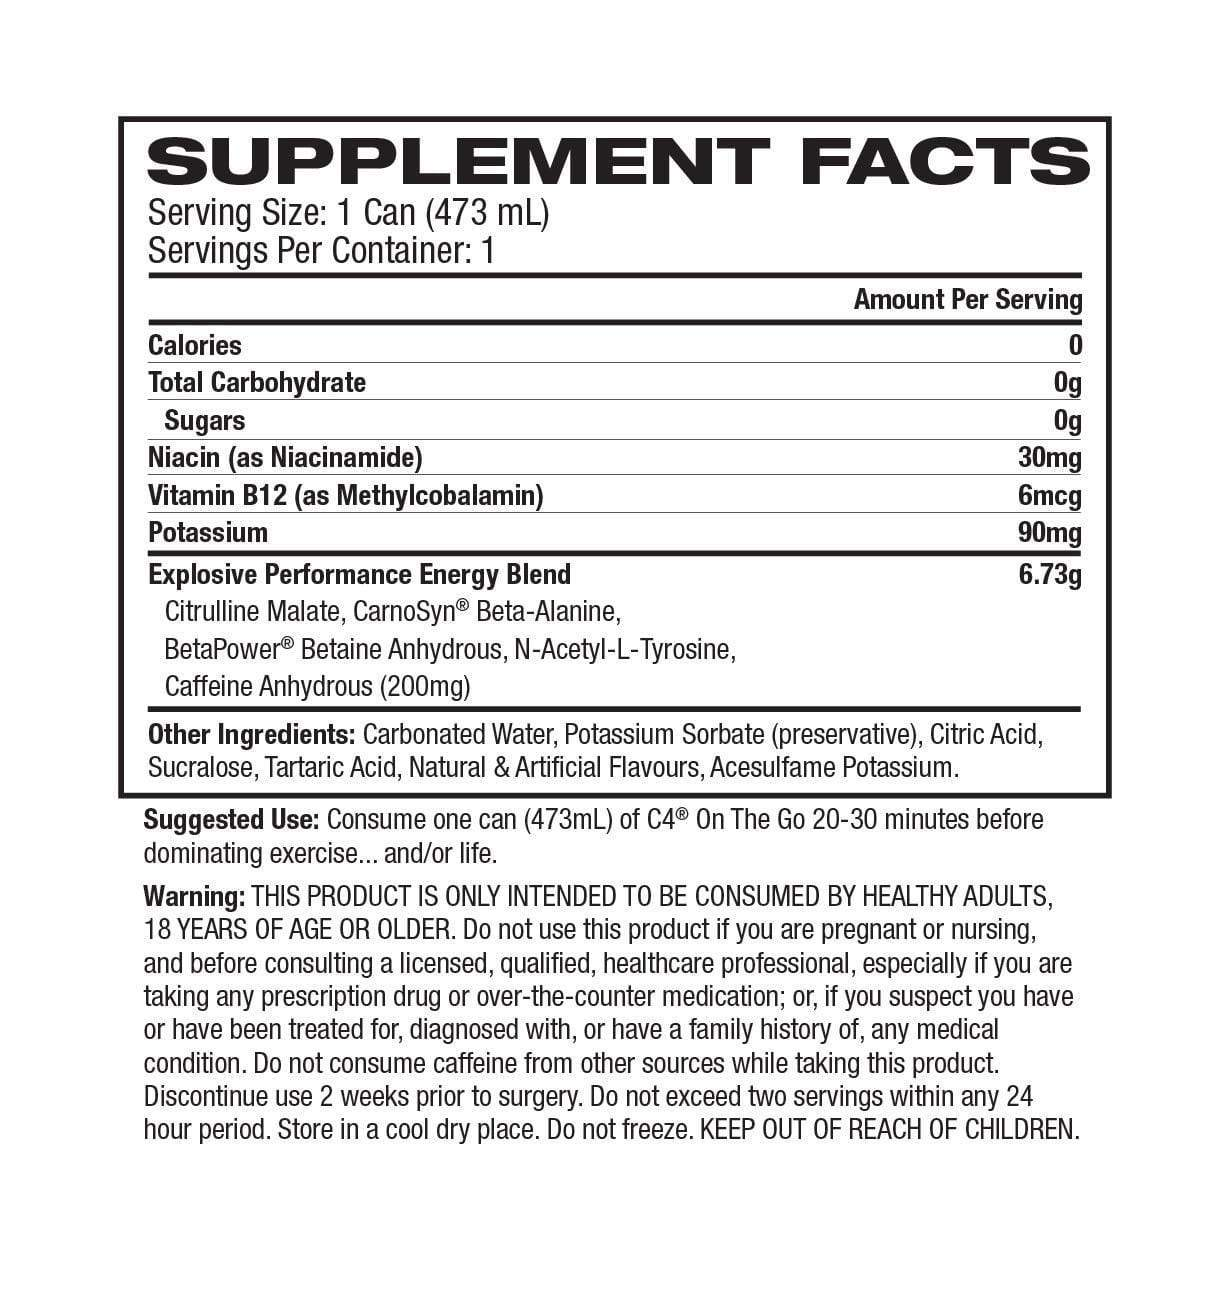 Nutrition Facts For C4 Carbonated RTD - 12 Pack